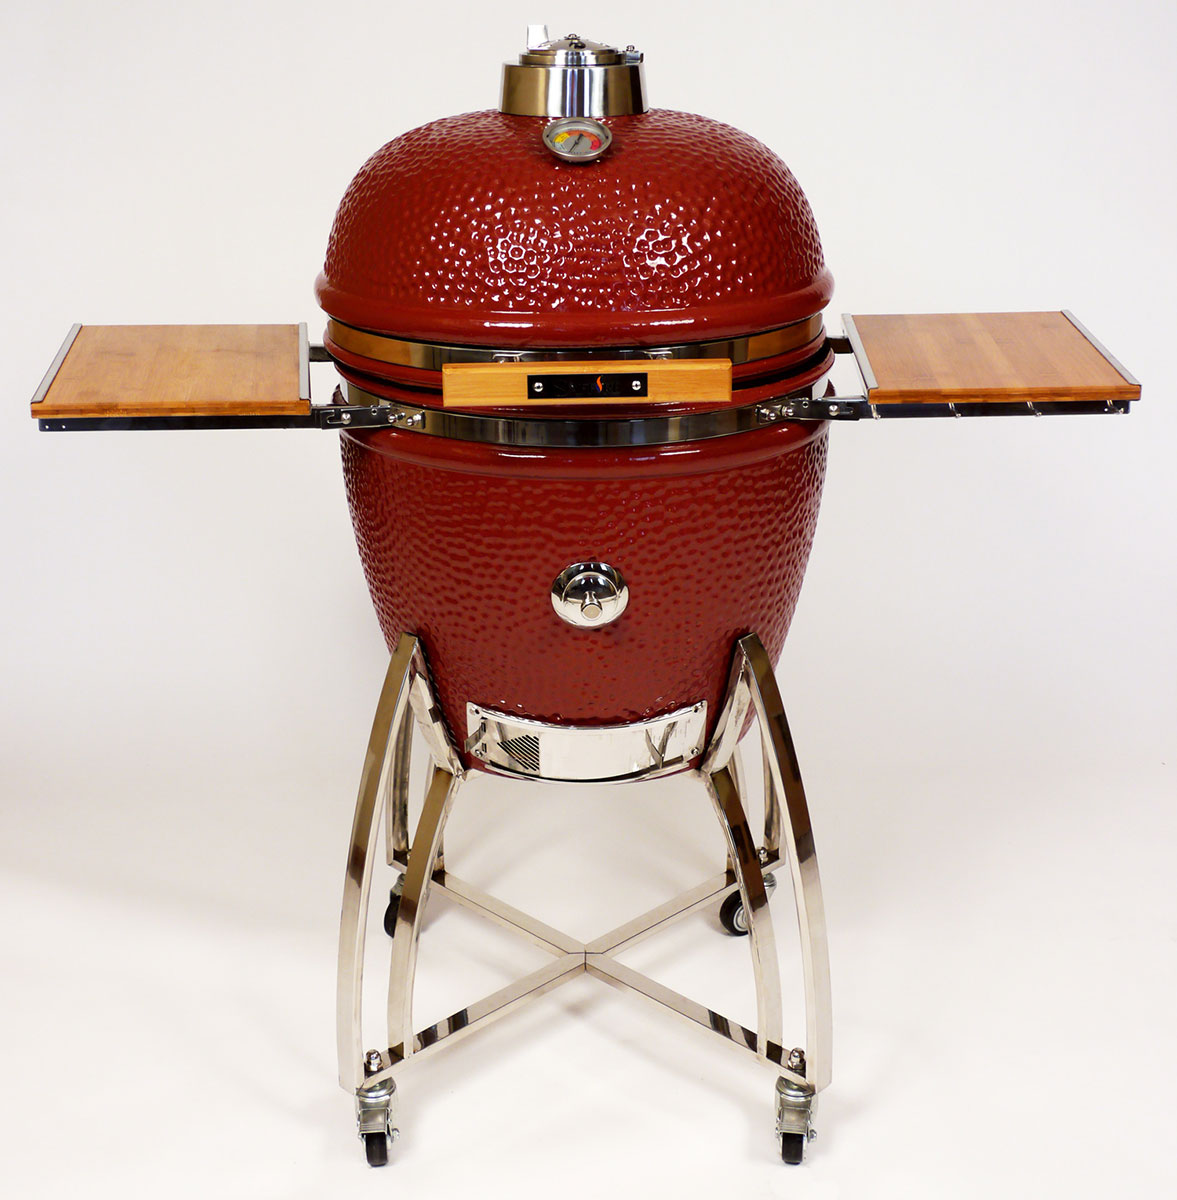 2014 Red Saffire Grill & Smoker